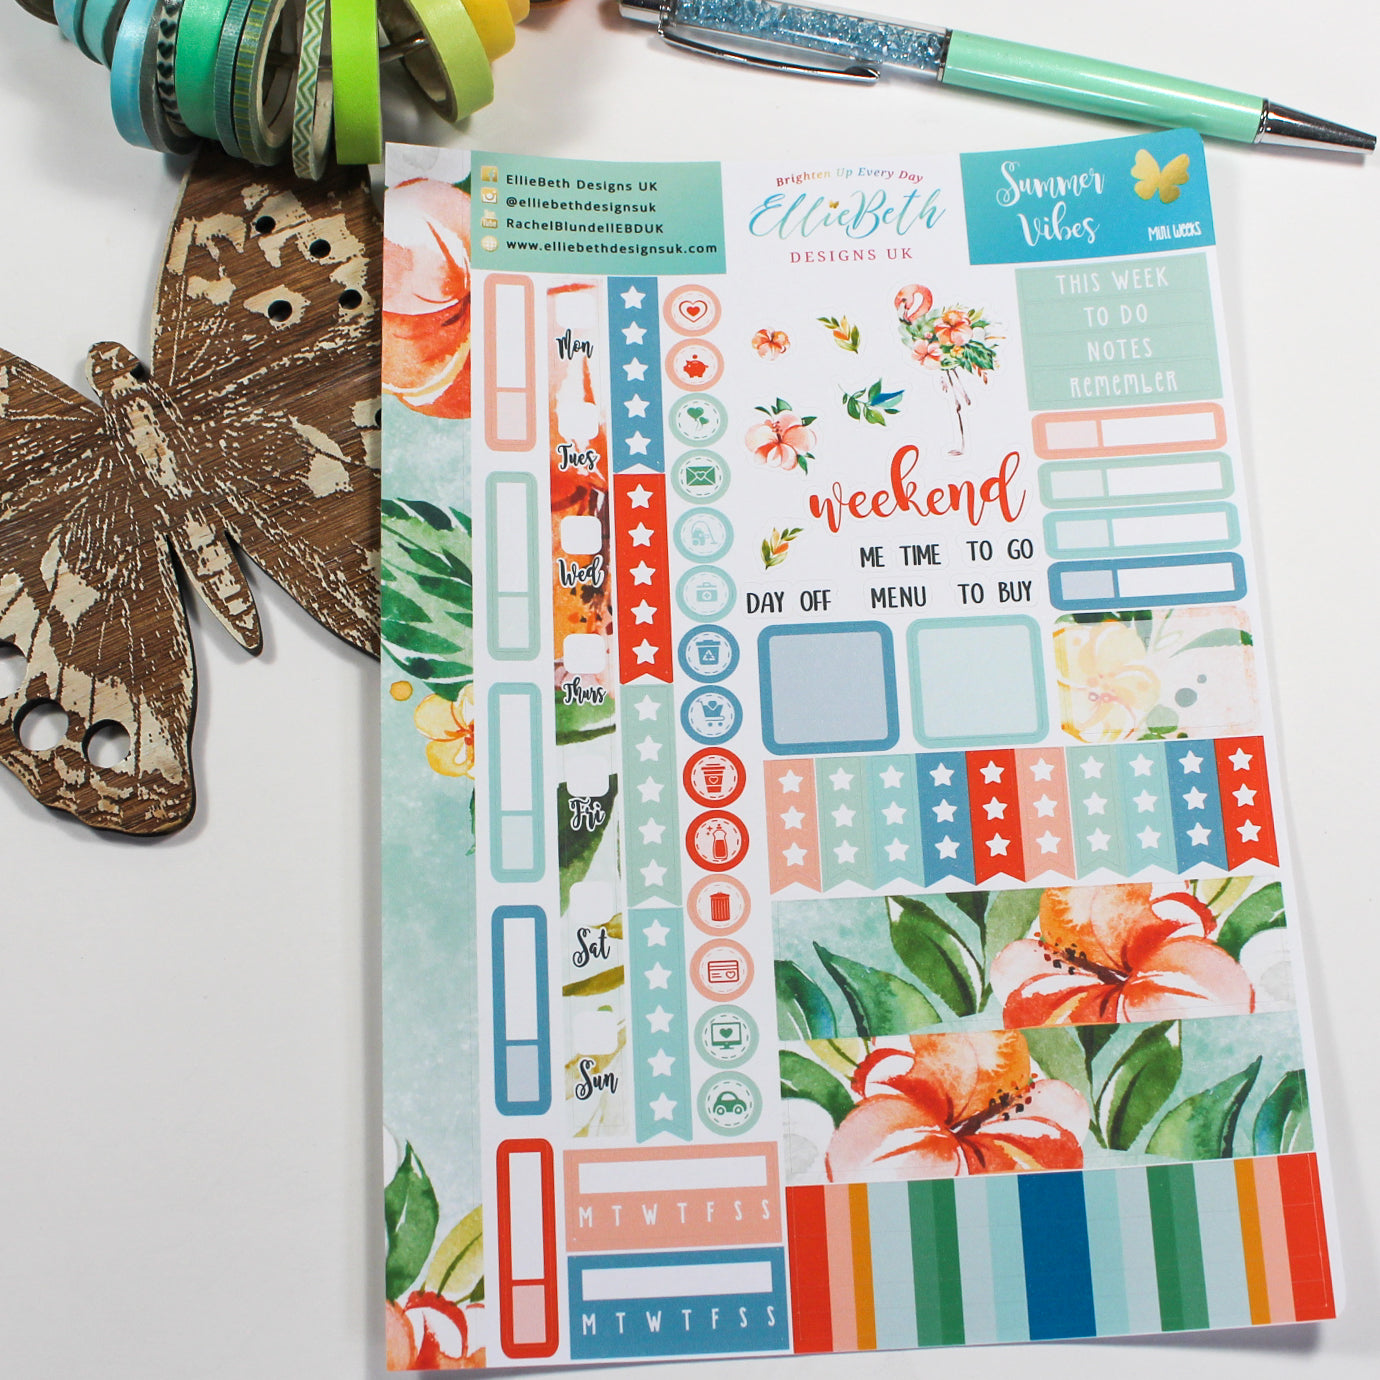 'Summer Vibes' - Mini Weeks (Hobonichi compatible) - A5 binder ready planner stickers